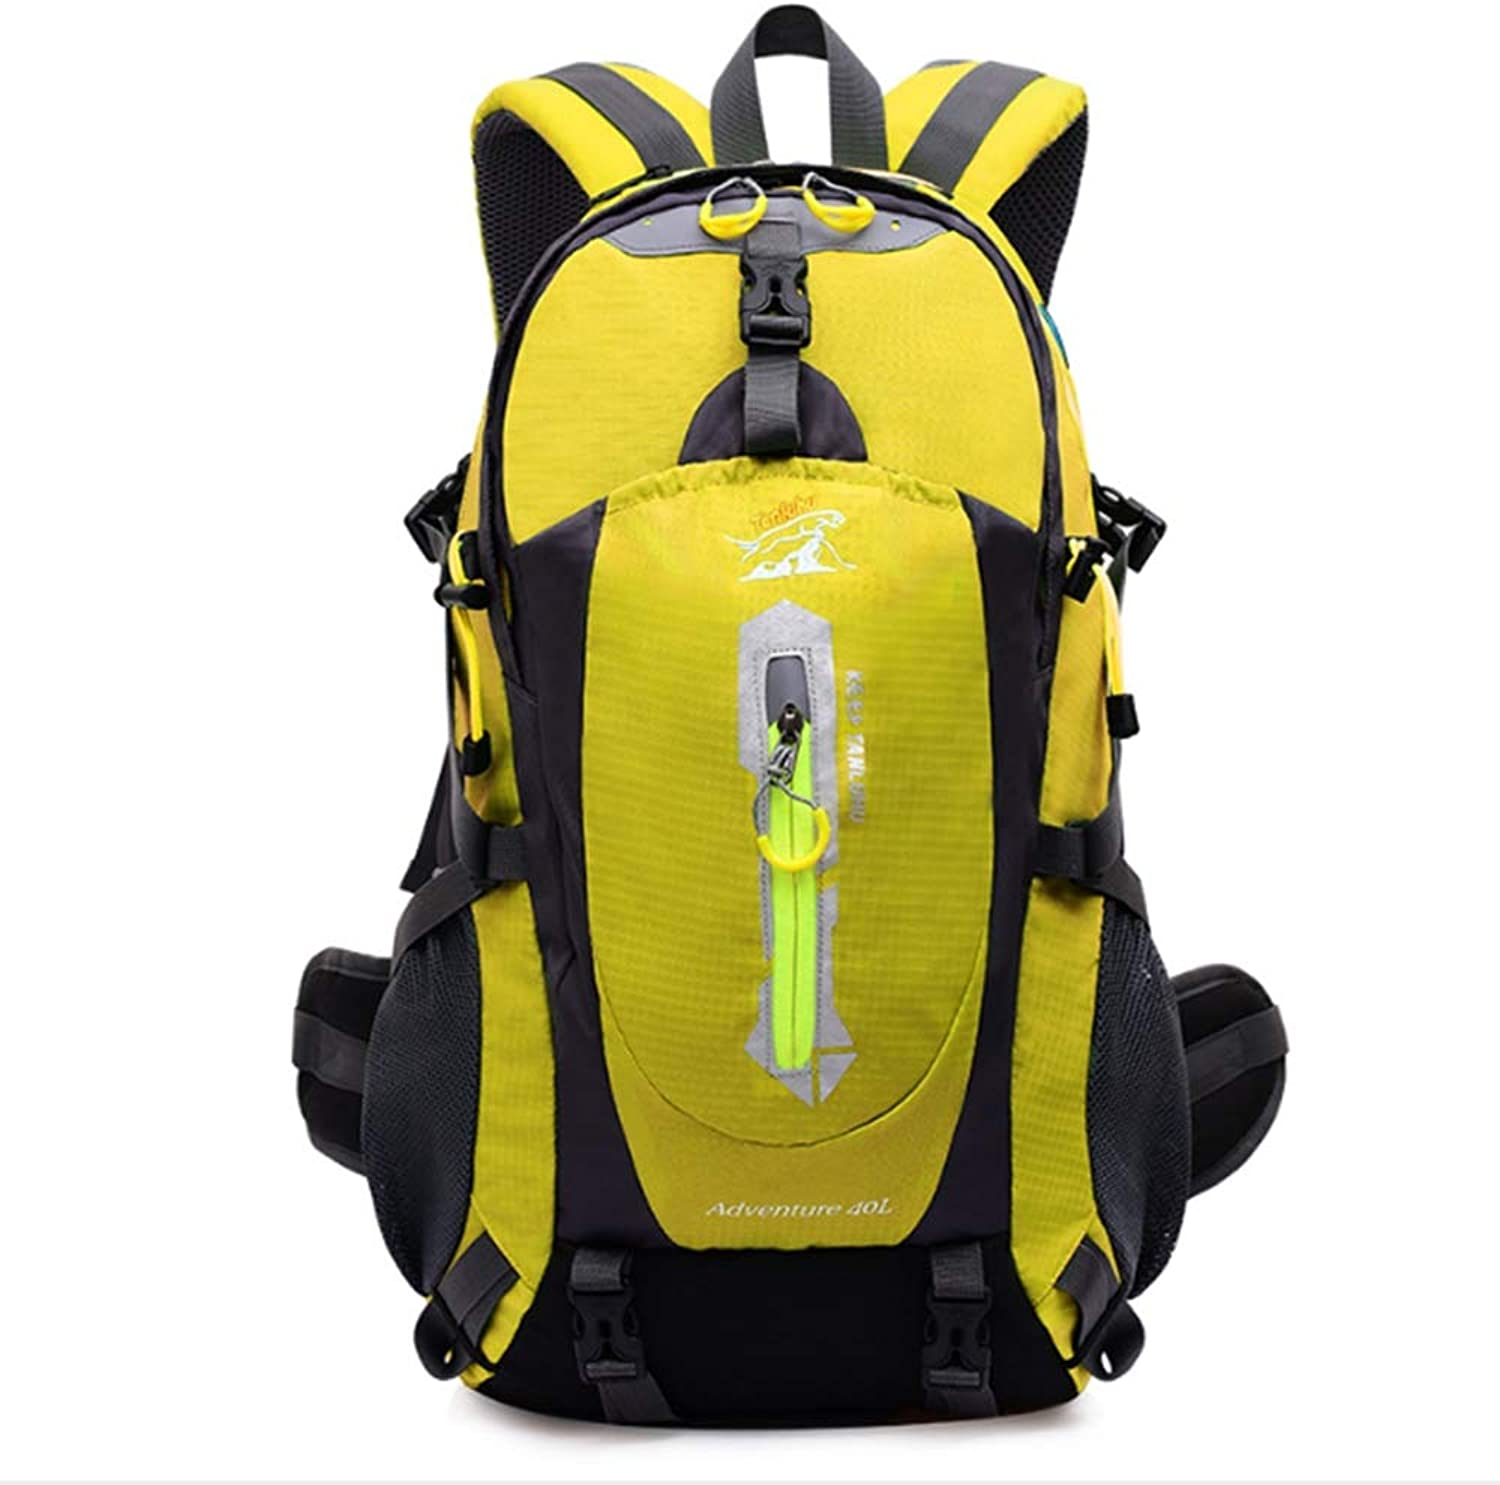 Outdoor Mountaineering Bag, Casual Backpack for Men and Women, MultiFunction LargeCapacity Travel Backpack for Hiking Camping